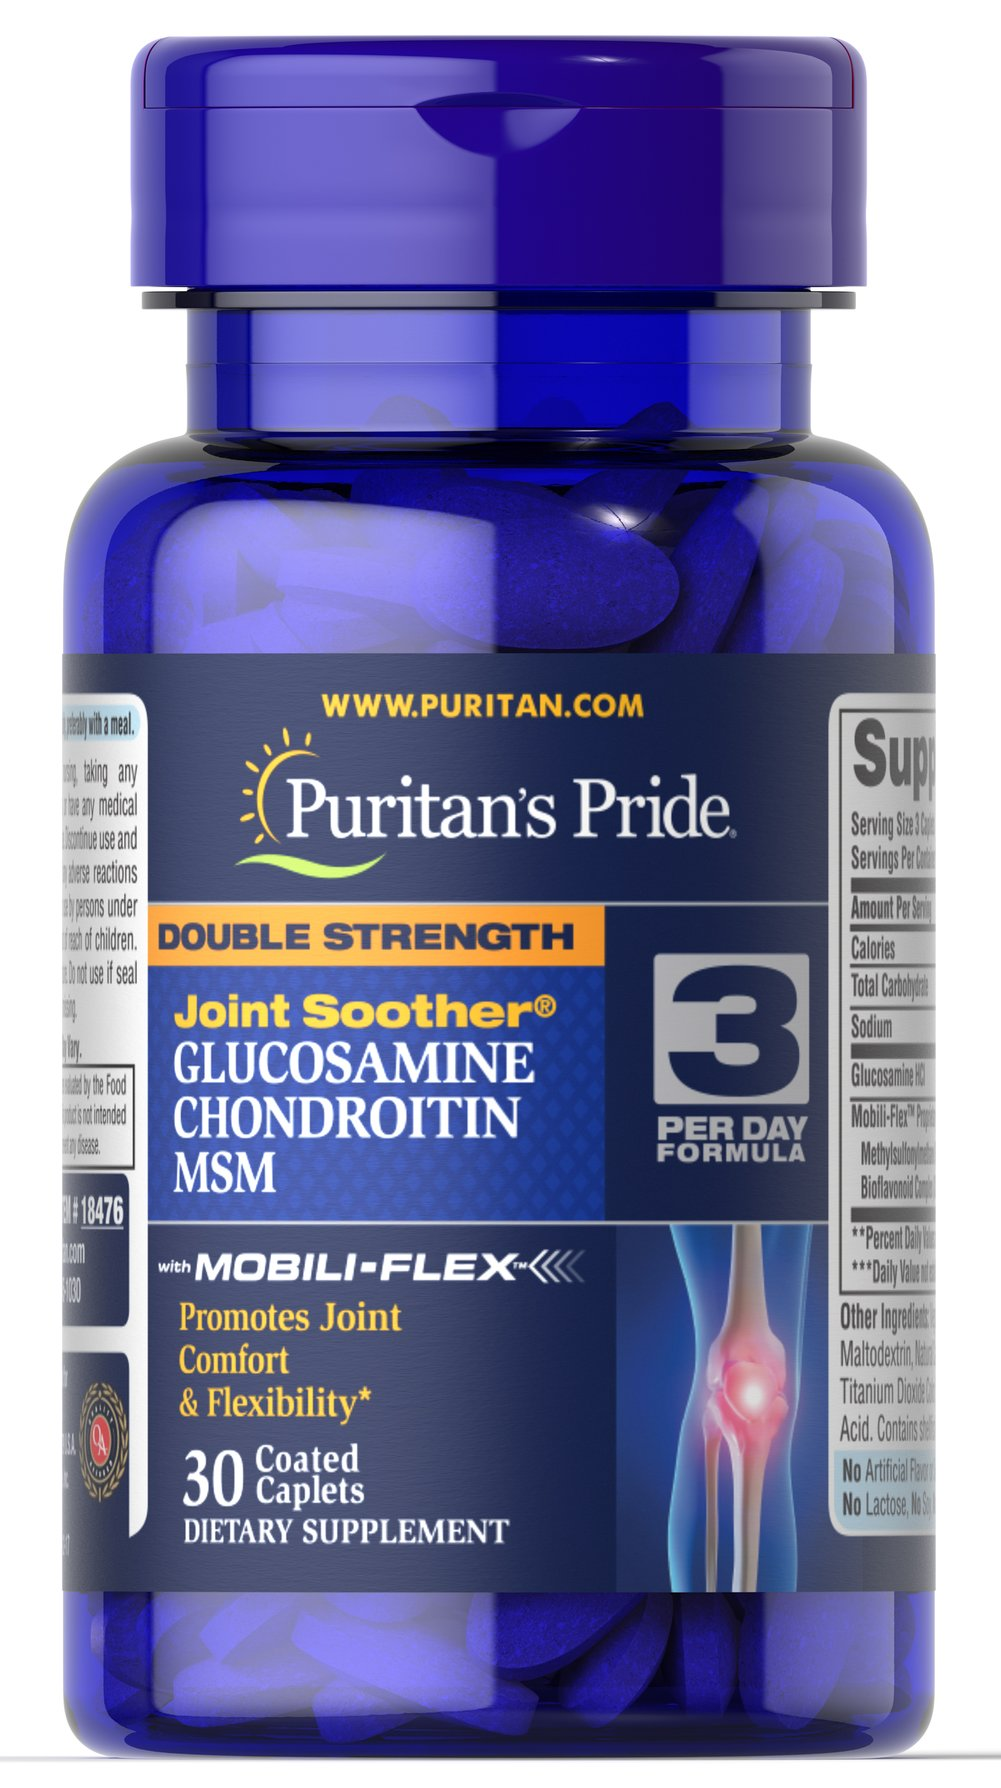 "Double Strength Glucosamine, Chondroitin & MSM Joint Soother® <p>Give your joints a taste of one of the most popular formulas for joint health support.*</p><p><span></span>The combination of Glucosamine, Chondroitin, and MSM help to nutritionally <a href=""/joint-support-062?searchterm=joint%20health&rdcnt=1"">support your joints</a> , for greater flexibility and range of motion.*</p> 30 Caplets  $3.29"